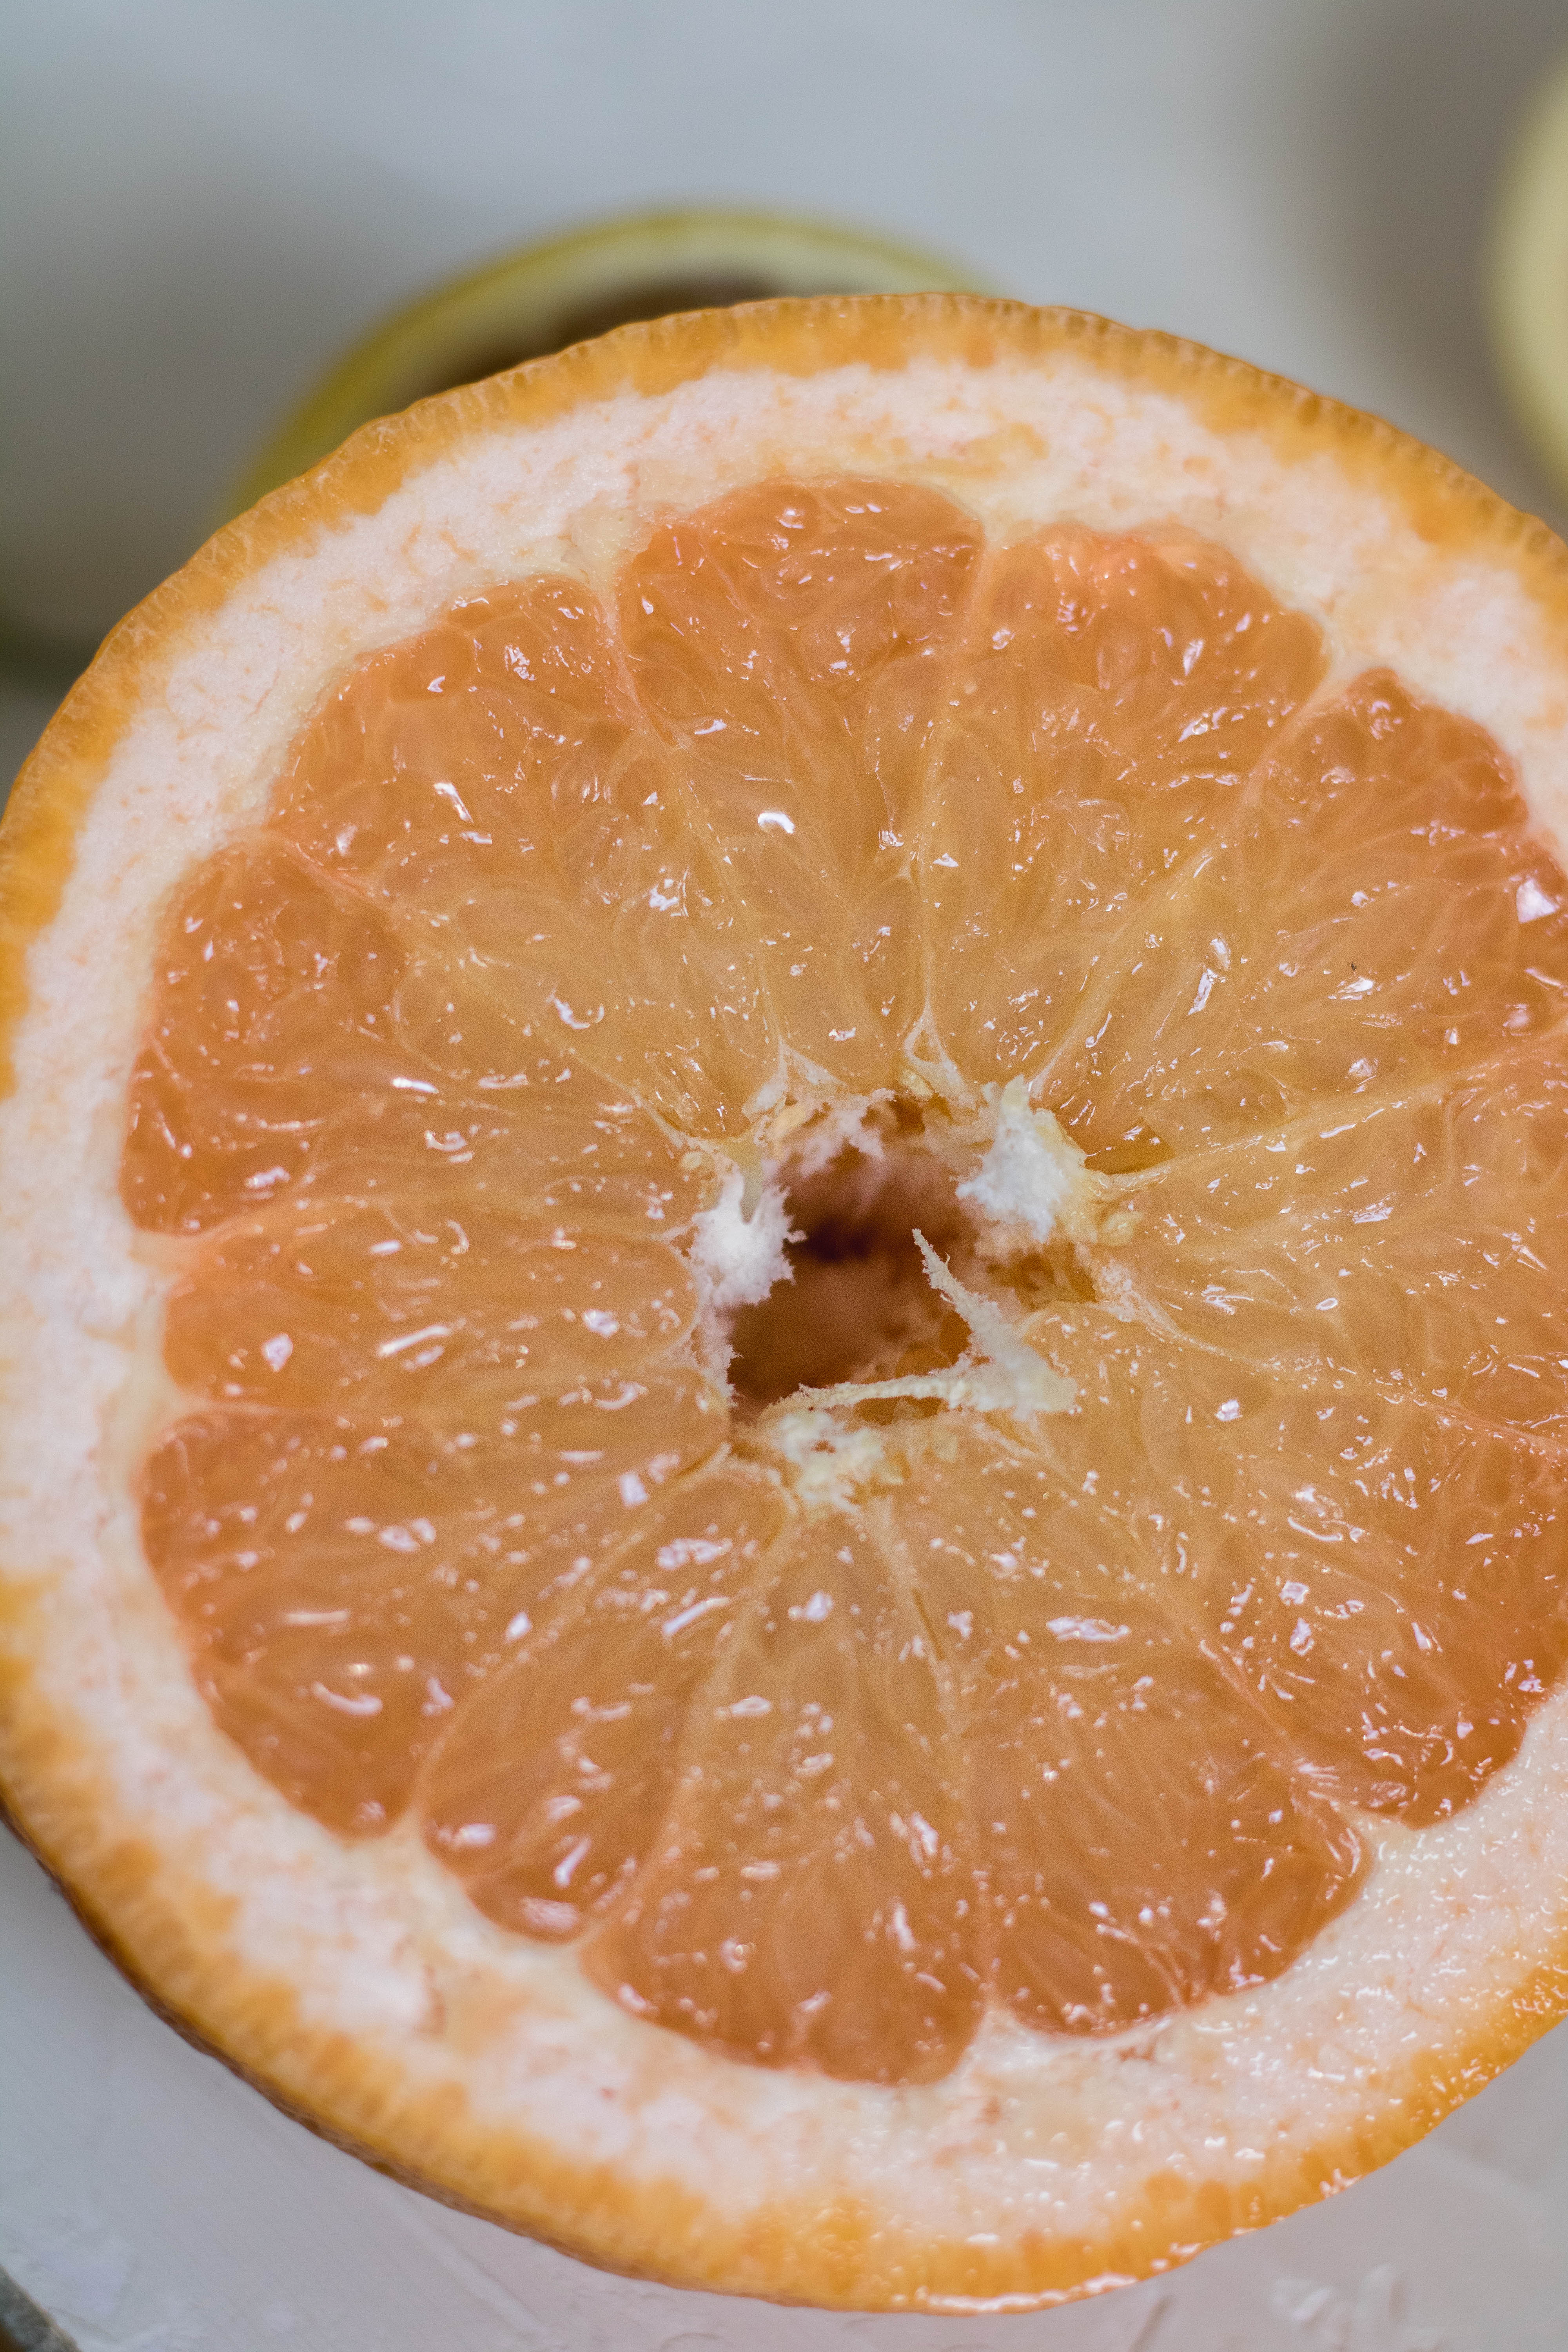 Sliced open grapefruit